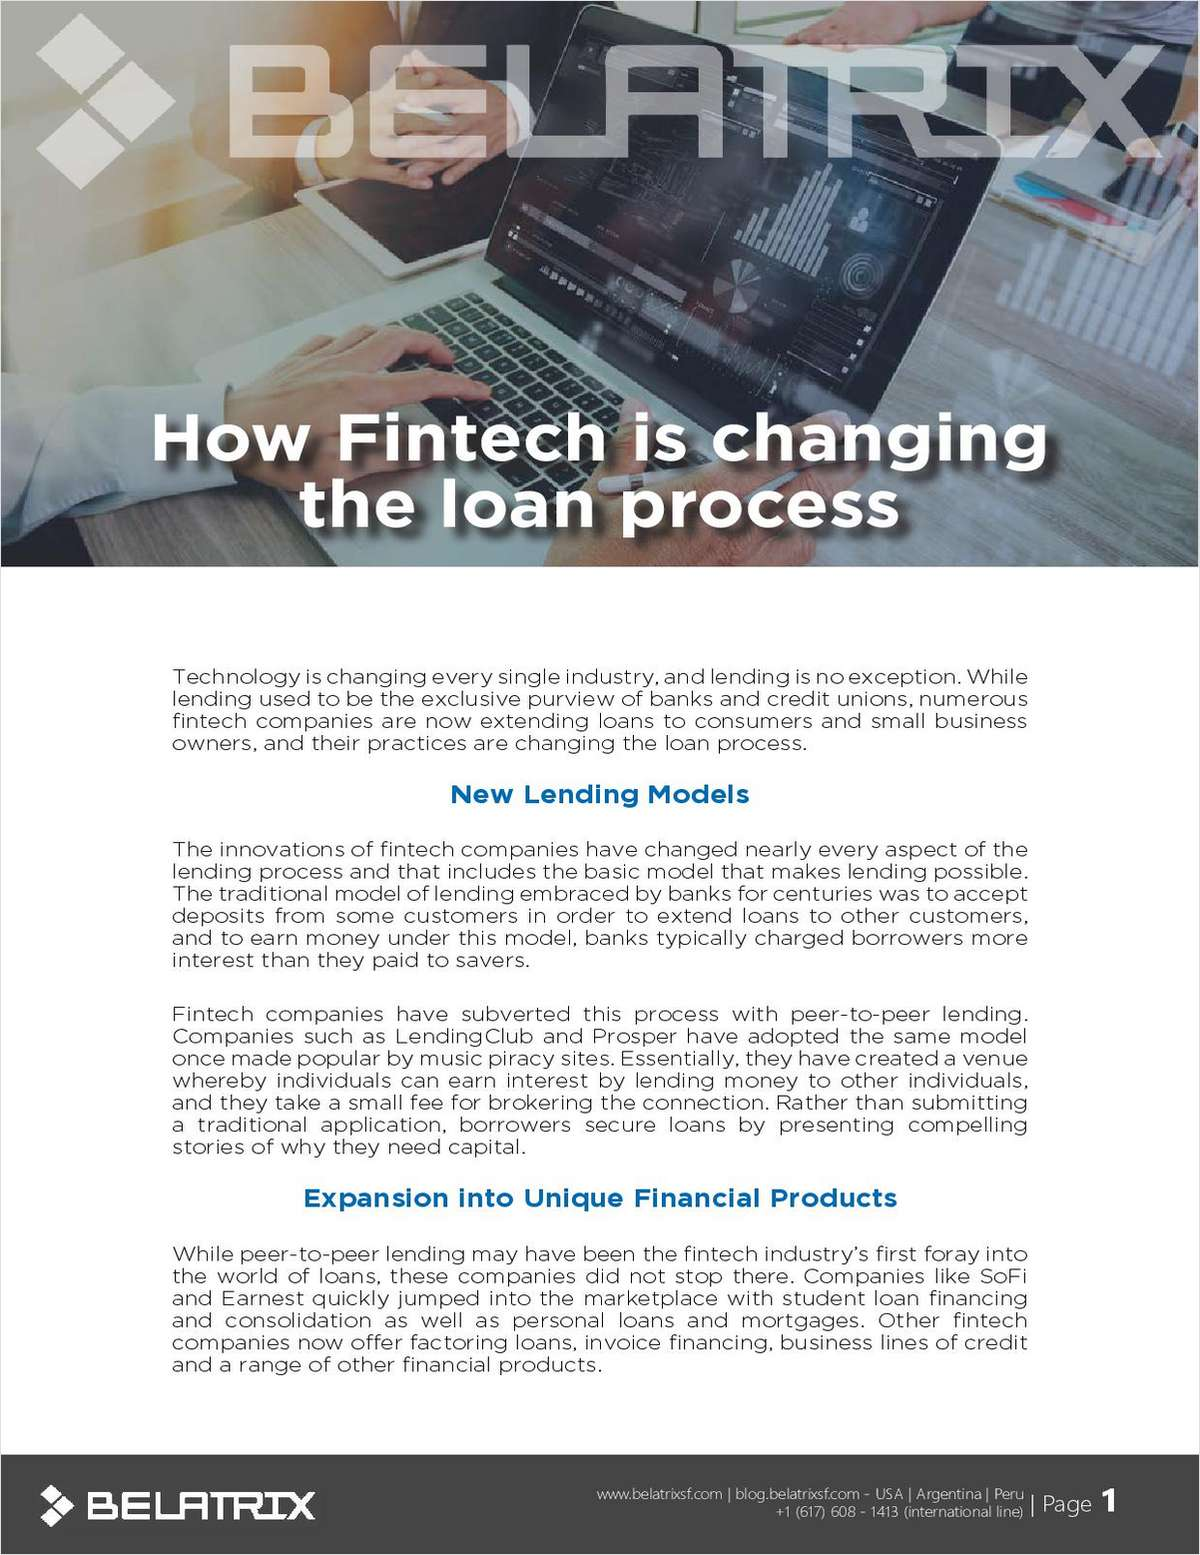 How Fintech is Changing the Loan Process